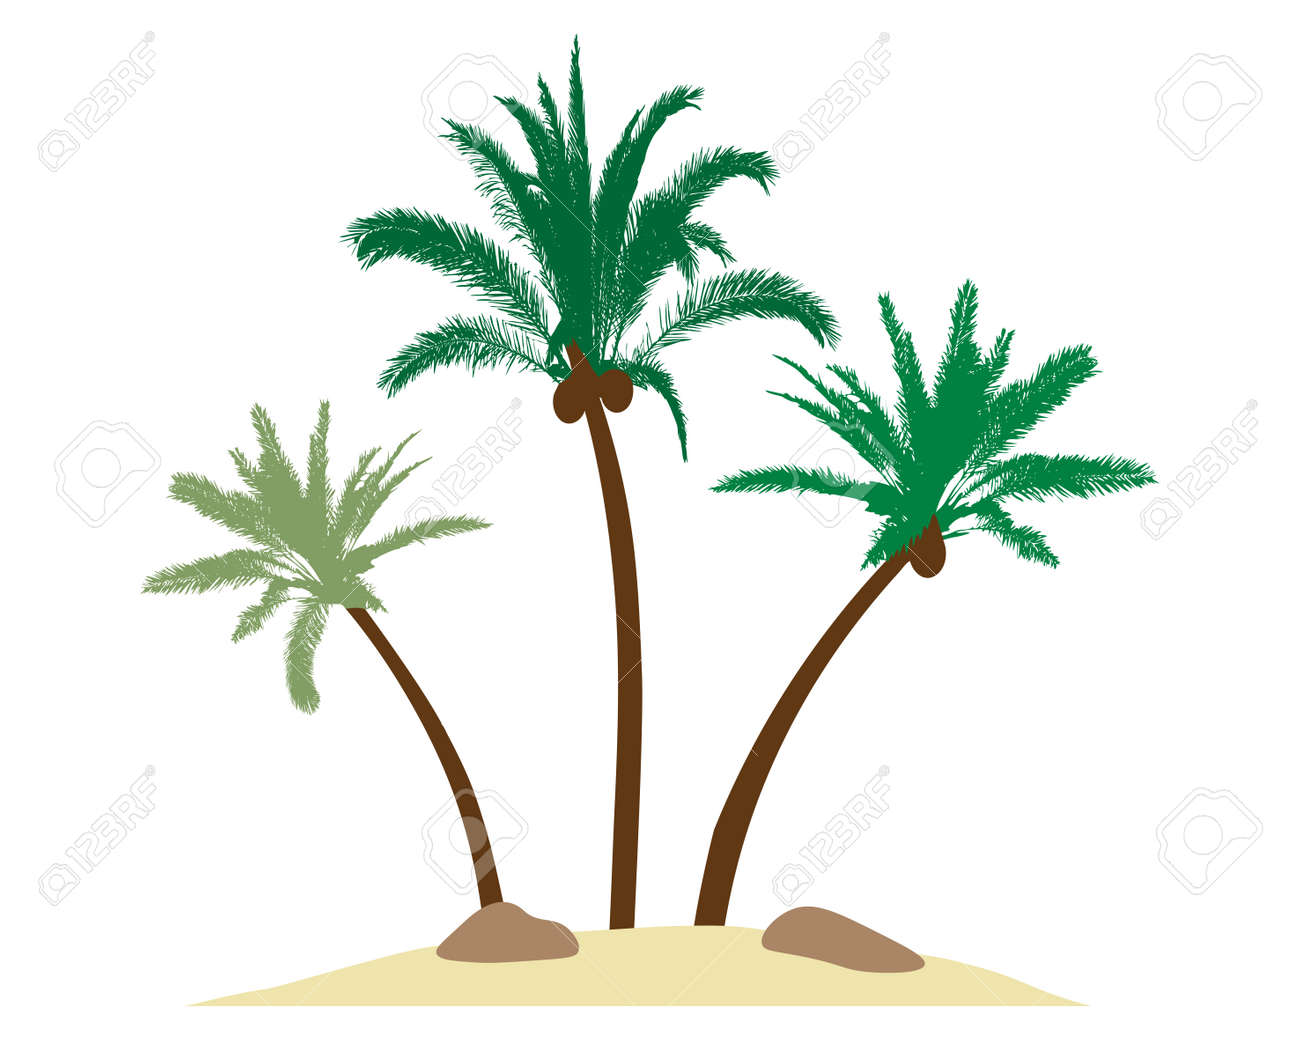 Beautiful palm trees with coconuts on island, sand, stones. Vector illustration - 164195252